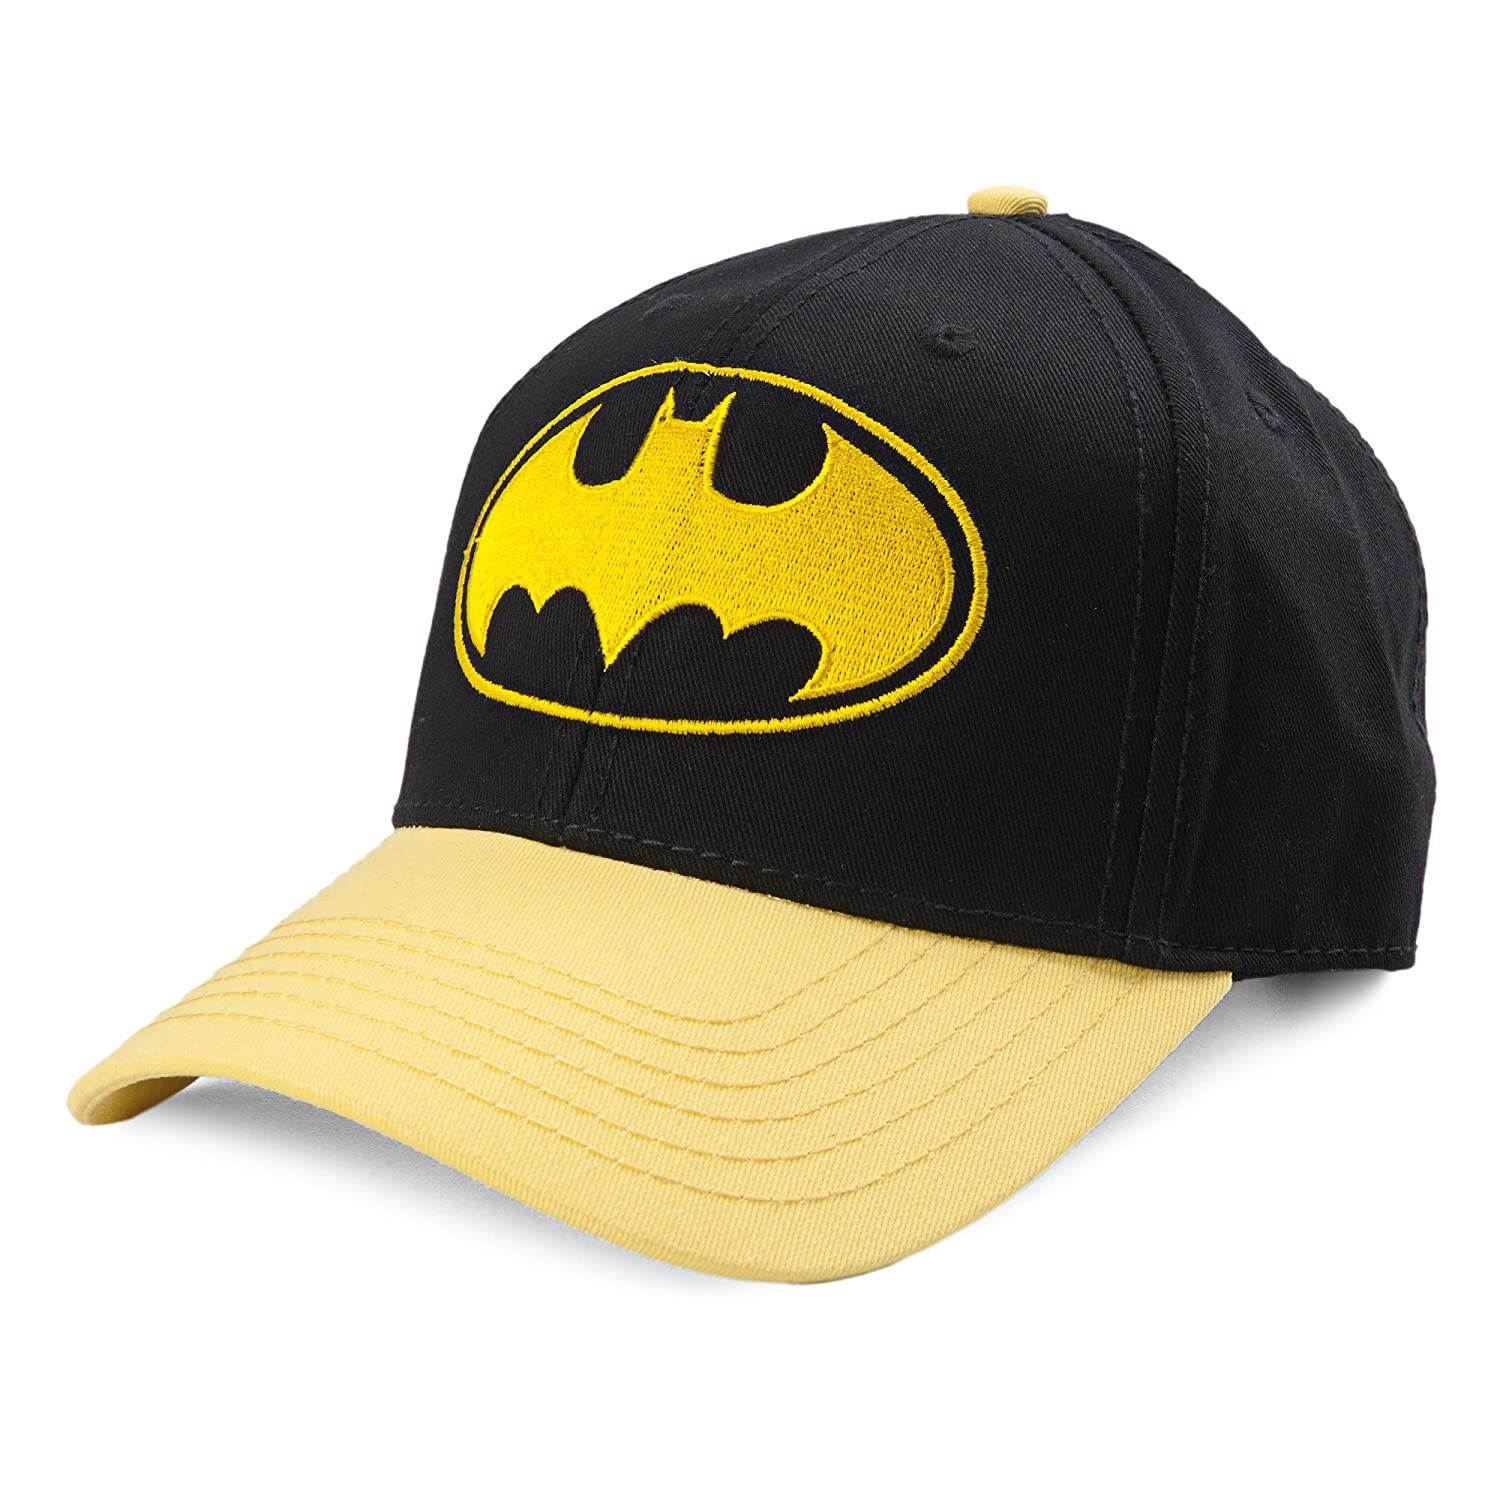 6171172c9 Amazon.com: DC Comics Batman Gold Bat Logo Curved Bill Snapback Baseball Cap:  Sports & Outdoors